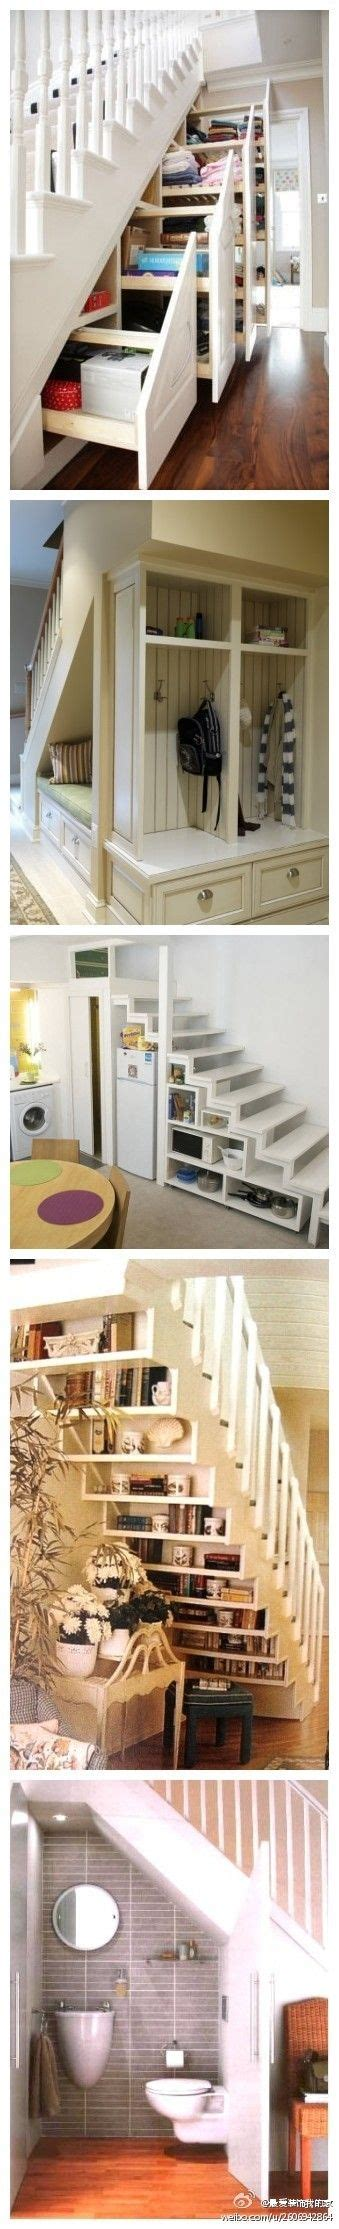 i had wasted space in that weird under stairs closet so cool ideas for under the stairs that bathroom under the